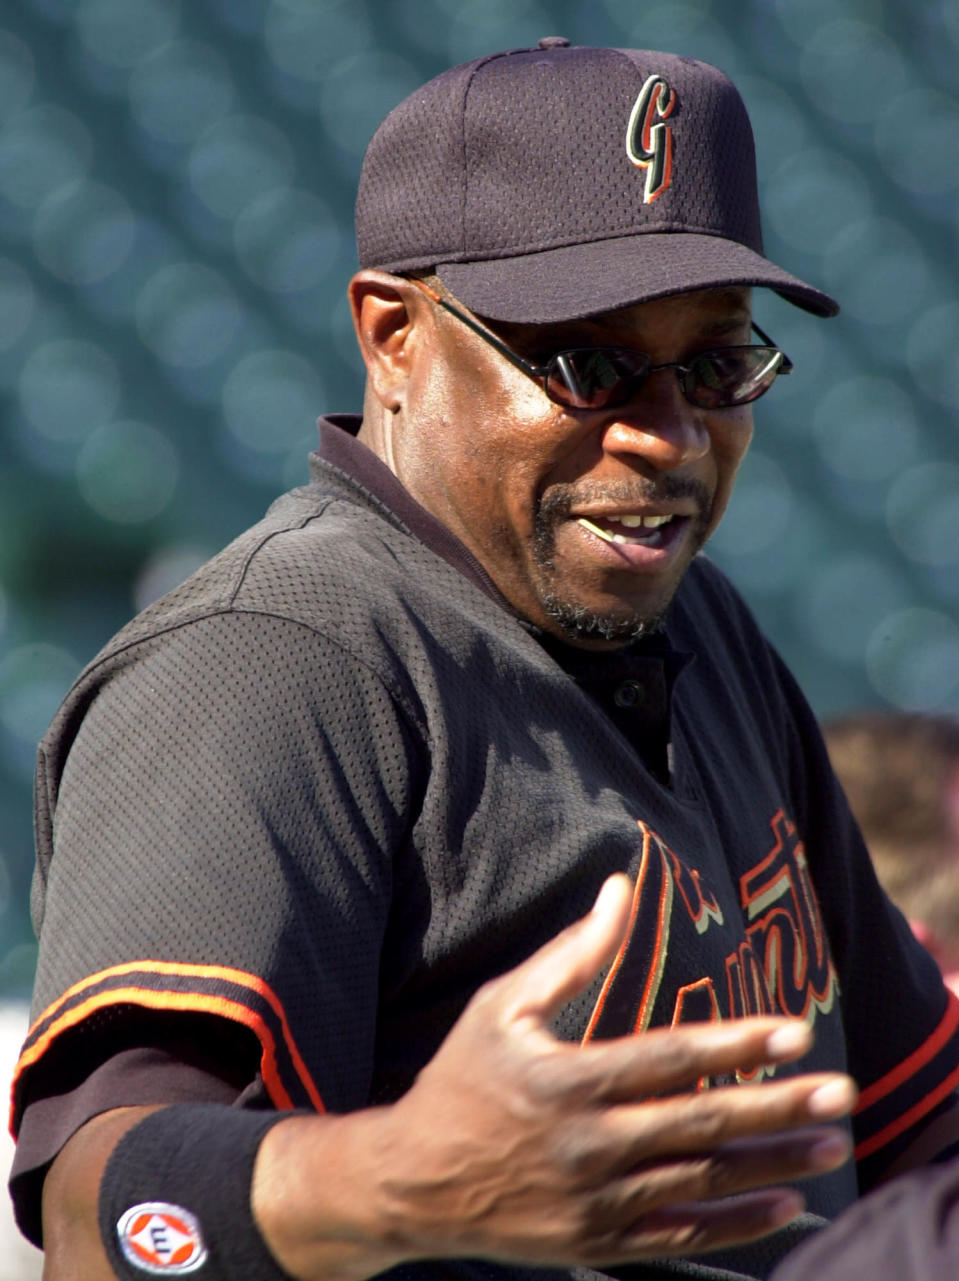 FILE - In this Oct. 11, 2002, file photo, San Francisco Giants manager Dusty Baker gestures during practice at Pac Bell Park in San Francisco. In 1993, Bakers Giants went 103-59 but missed the playoffs by a single game after a memorable division race with the Atlanta Braves (there were no wild cards in those days). Over 22 years, Baker has guided four teams to the playoffs and notched 1,863 wins. But his career is marred by its postseason failures. (AP Photo/Elaine Thompson, File)